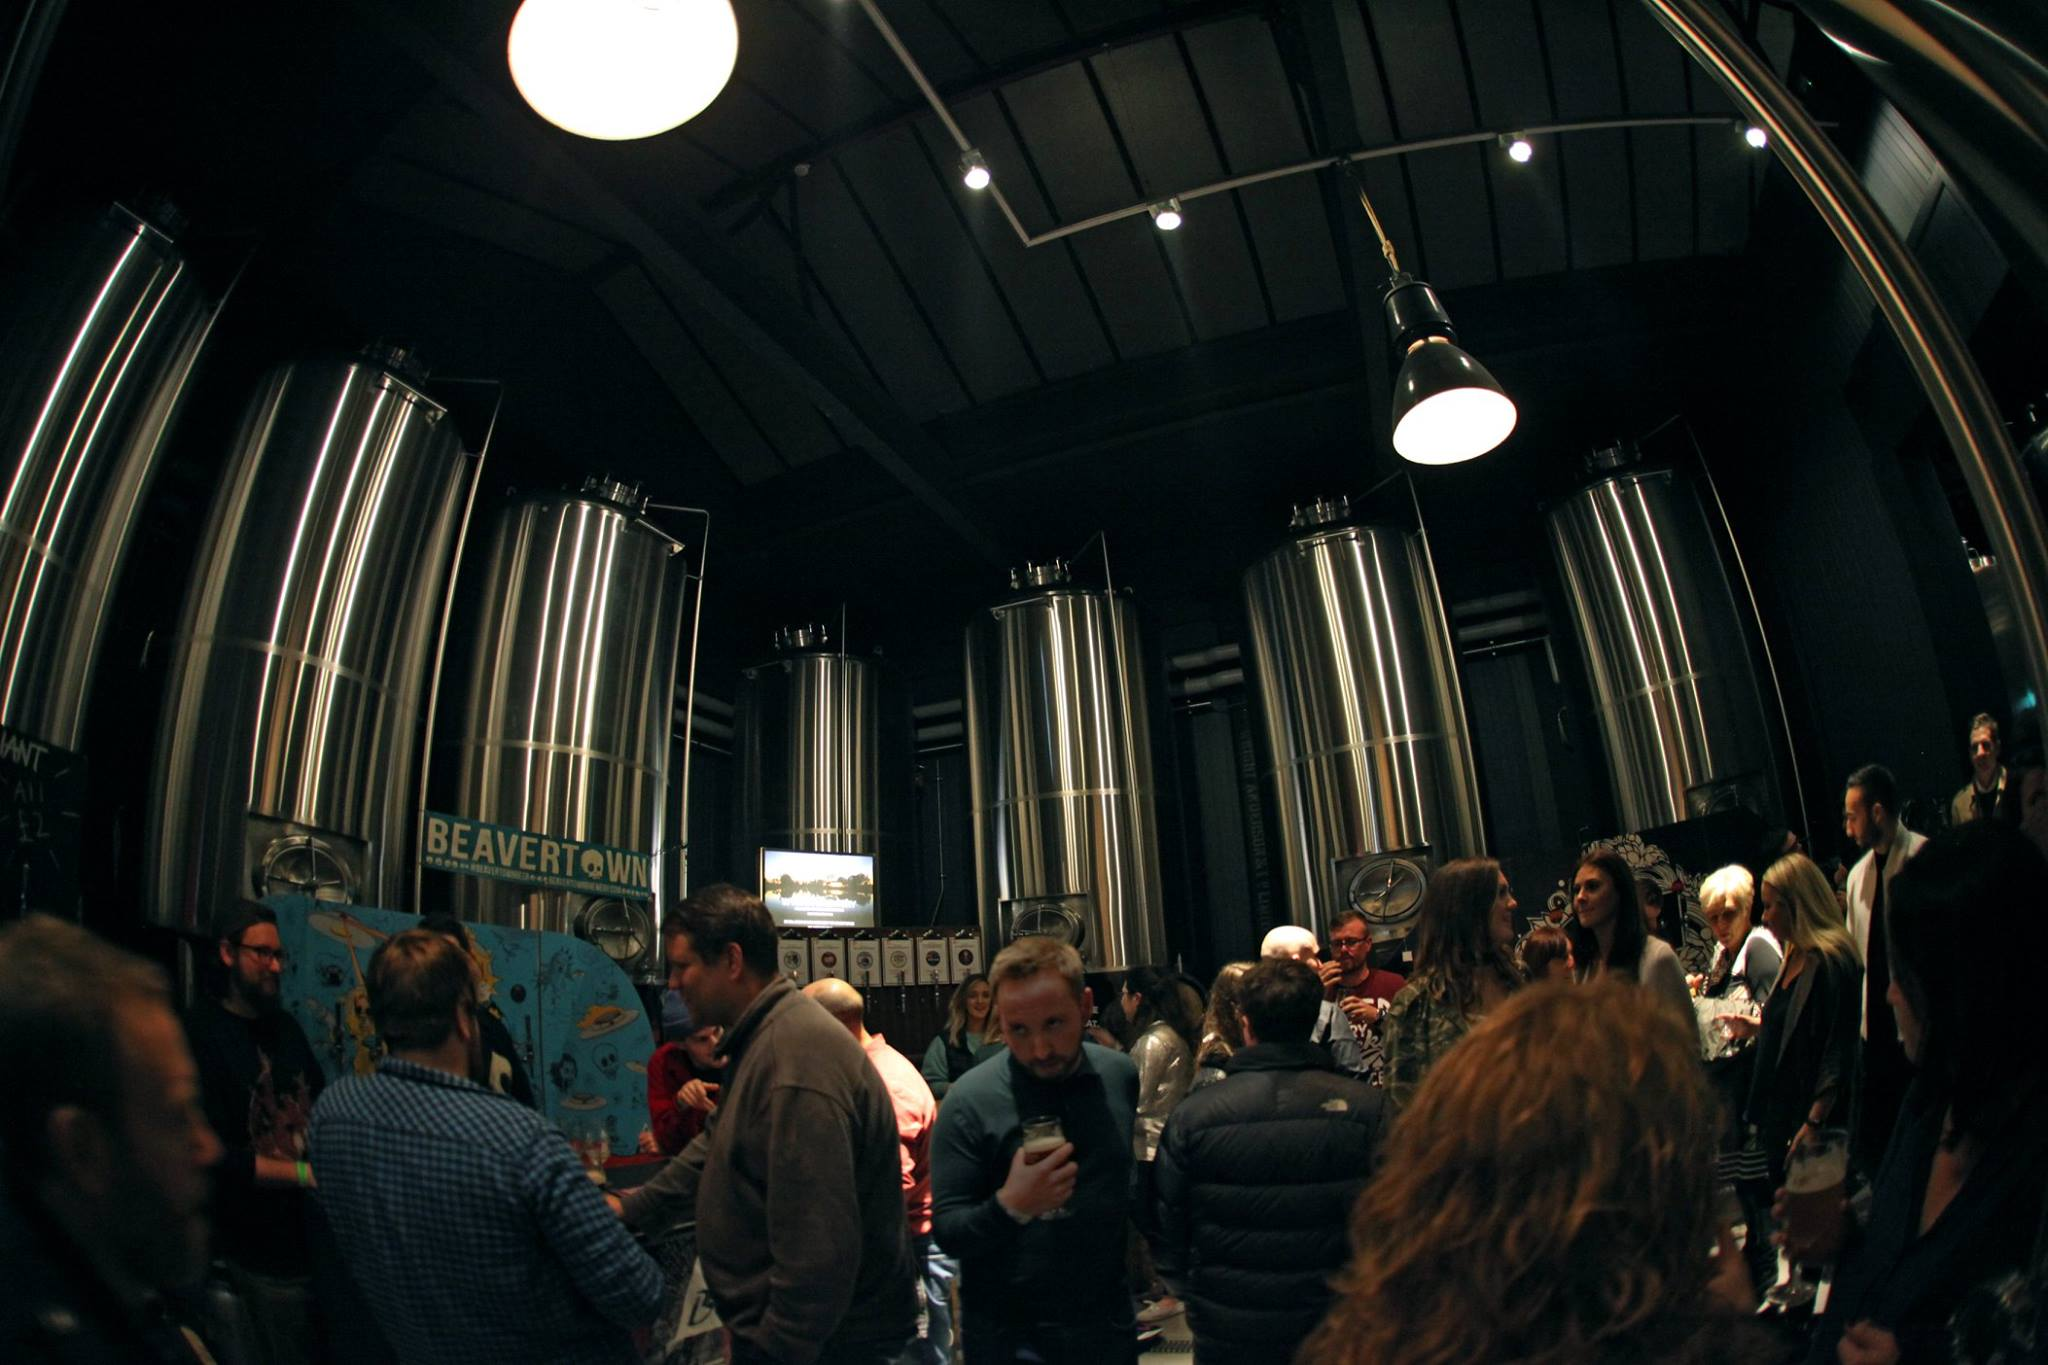 Newcastle's craft beer bars, featuring an image of people inside Wylam Brewery